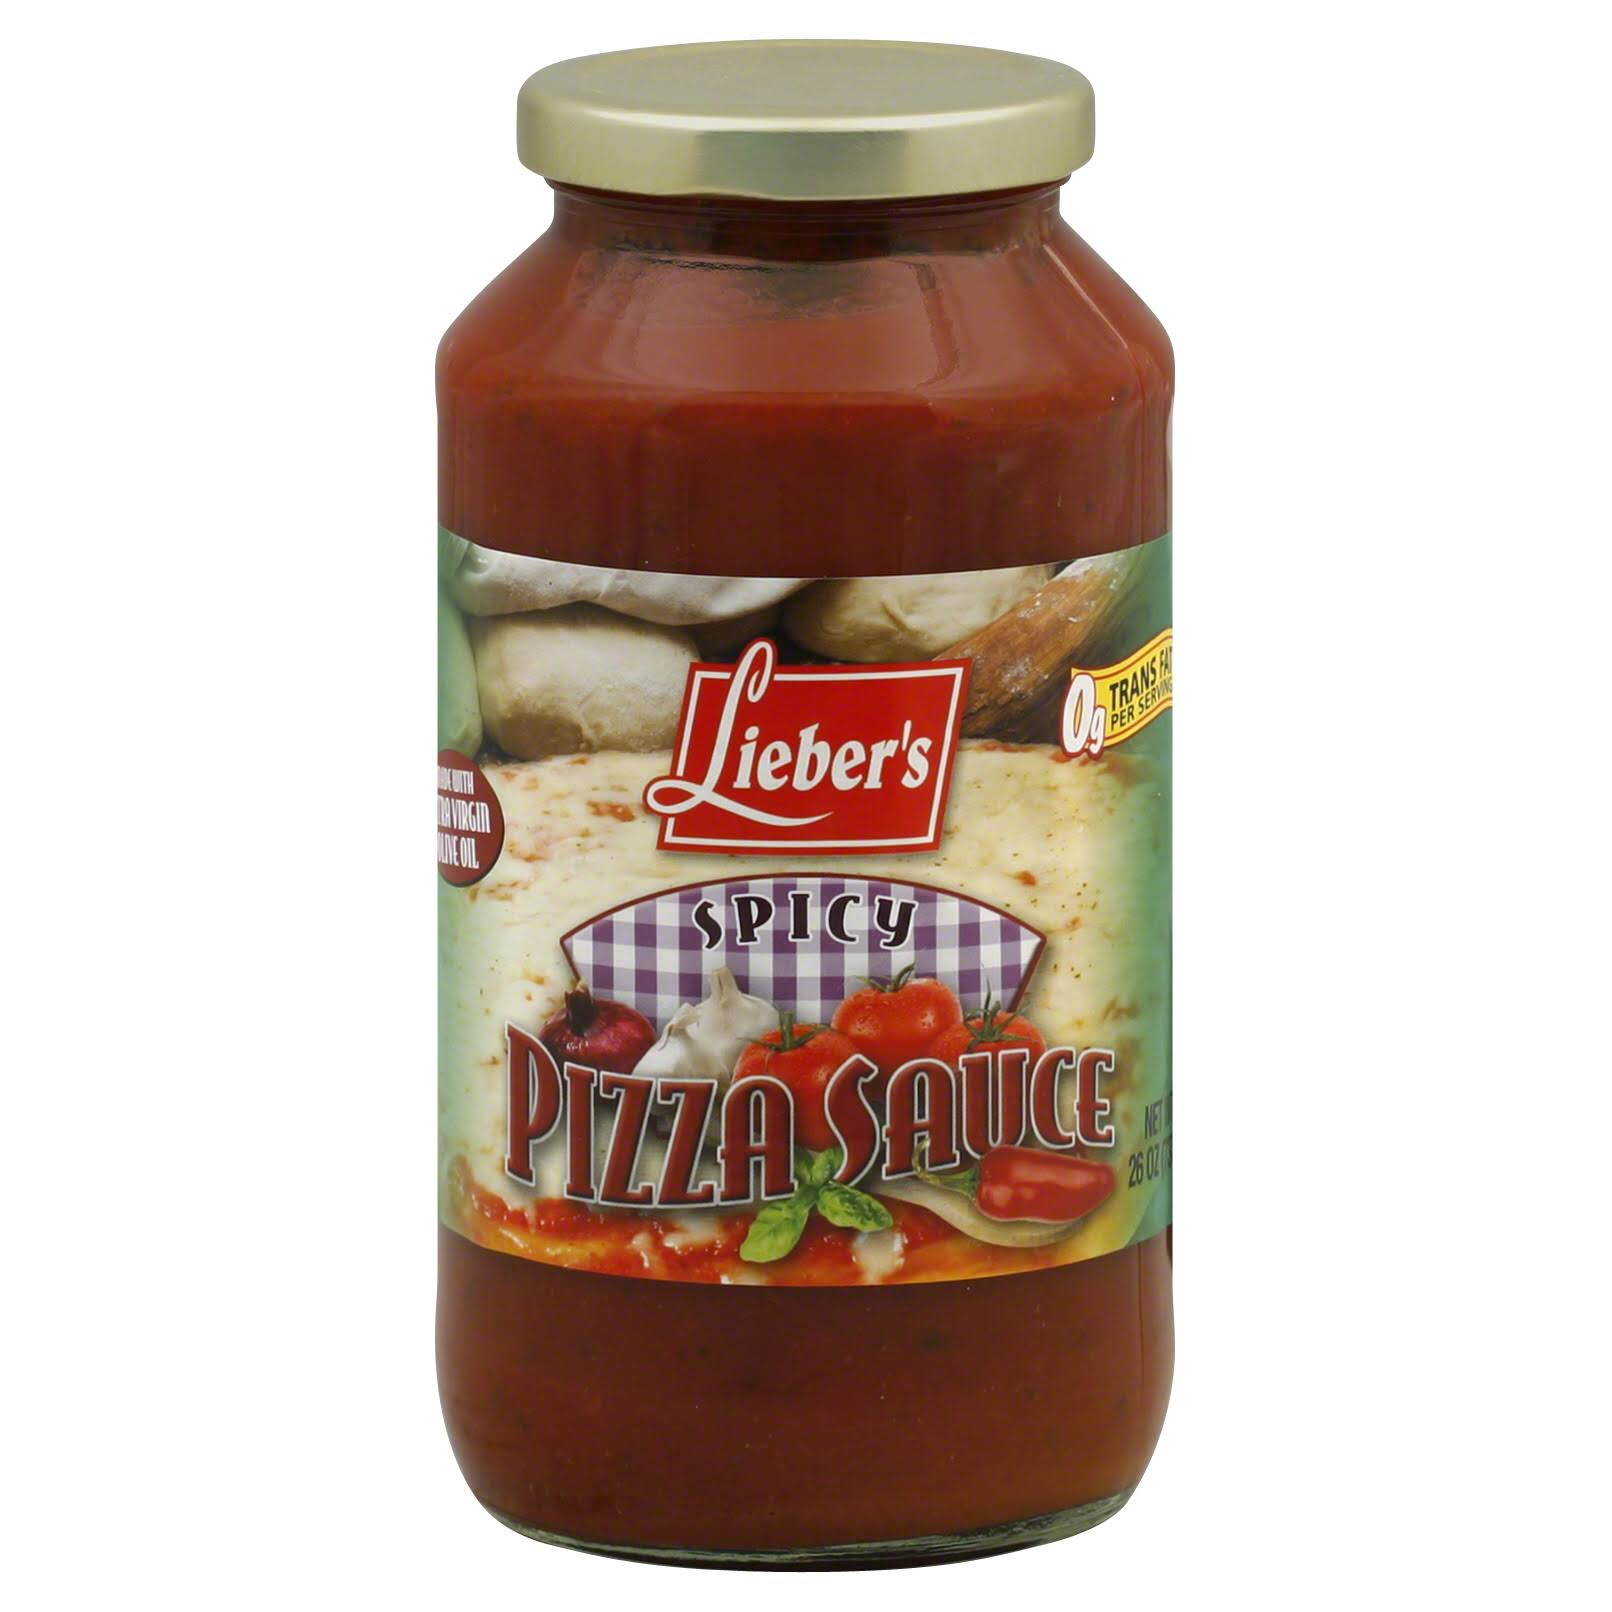 Liebers Pizza Sauce, Spicy - 26 oz